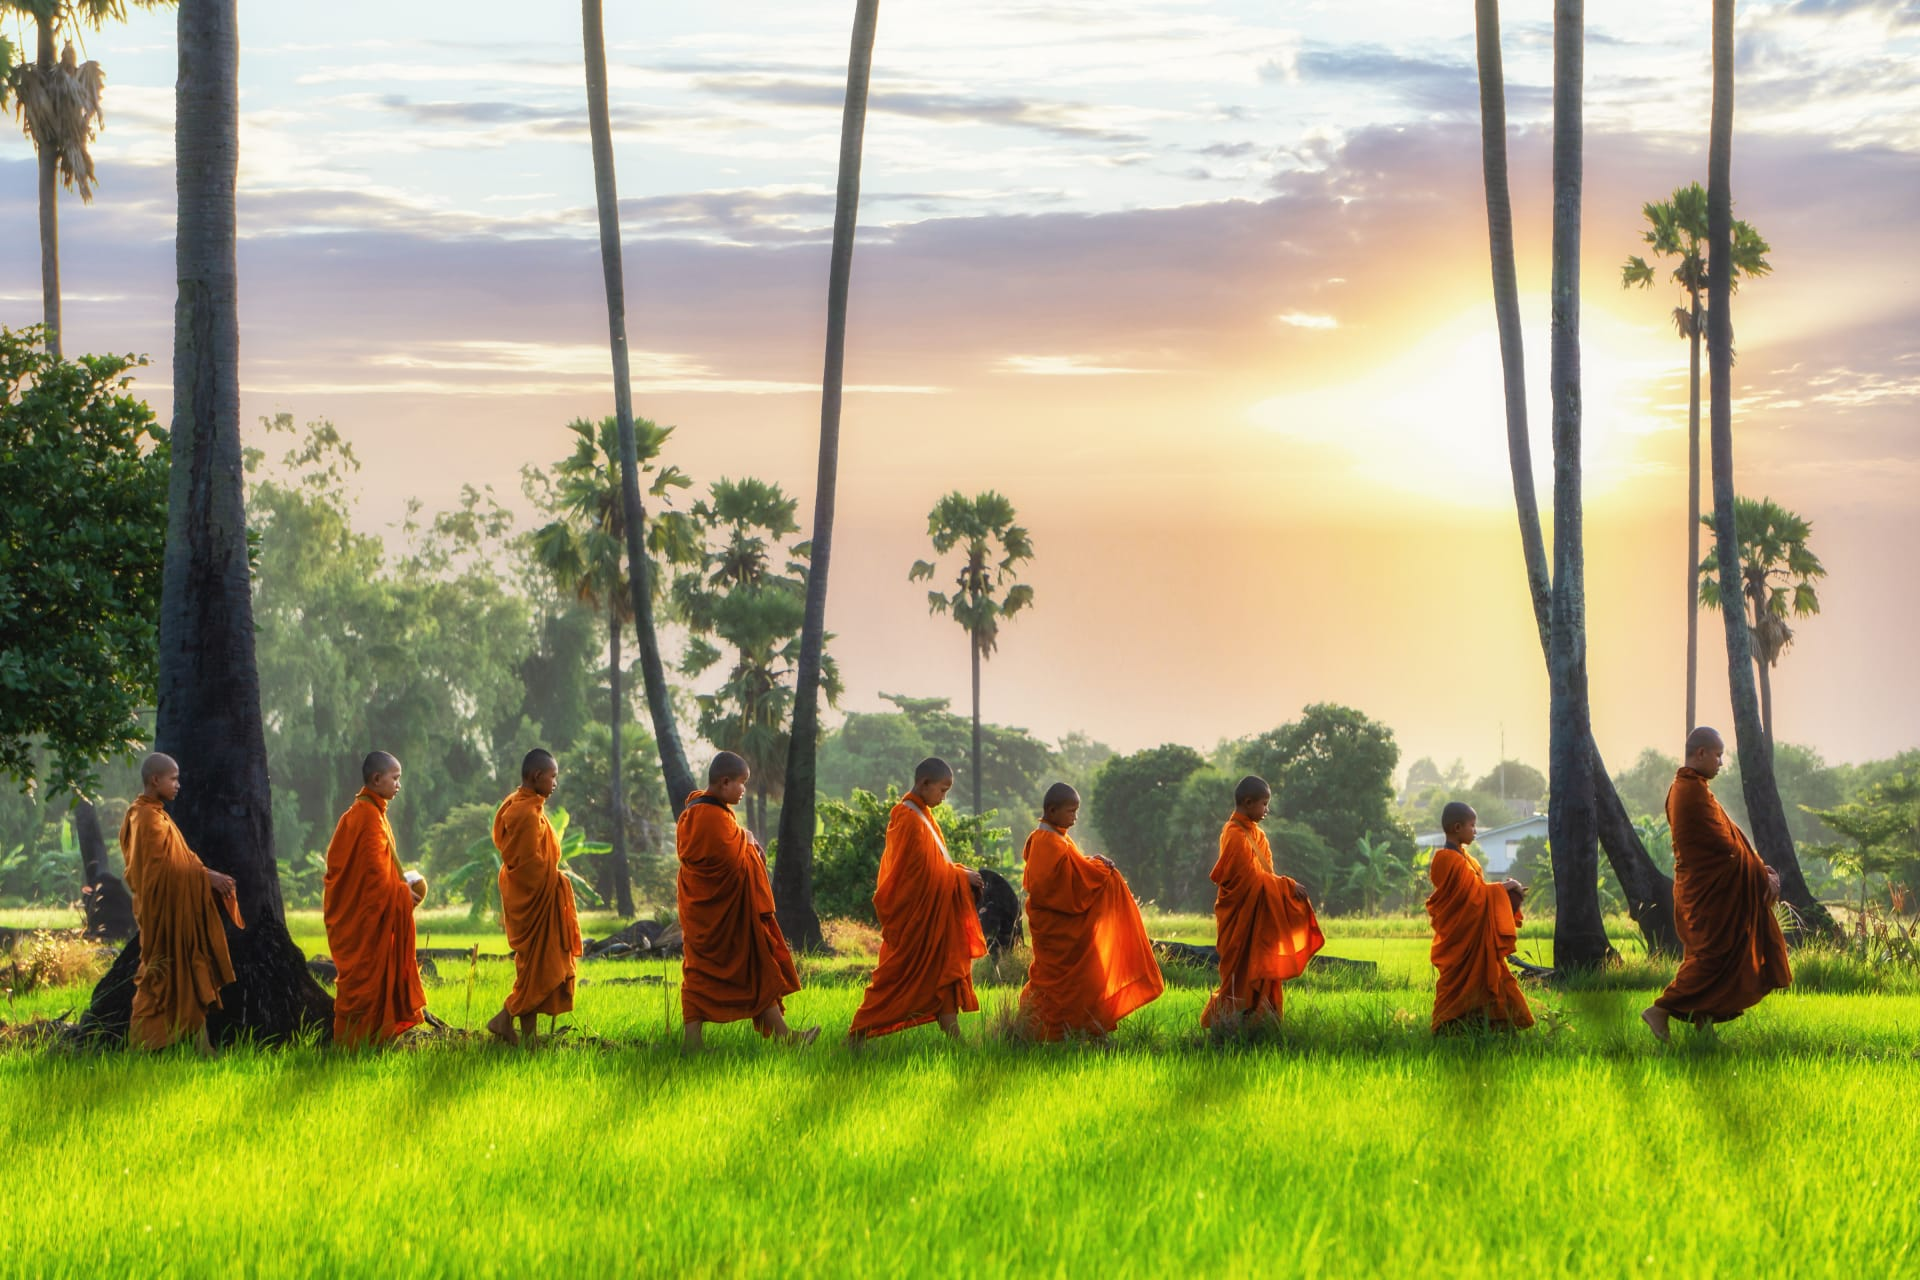 Chiang Mai - Offering food to Buddhist monks